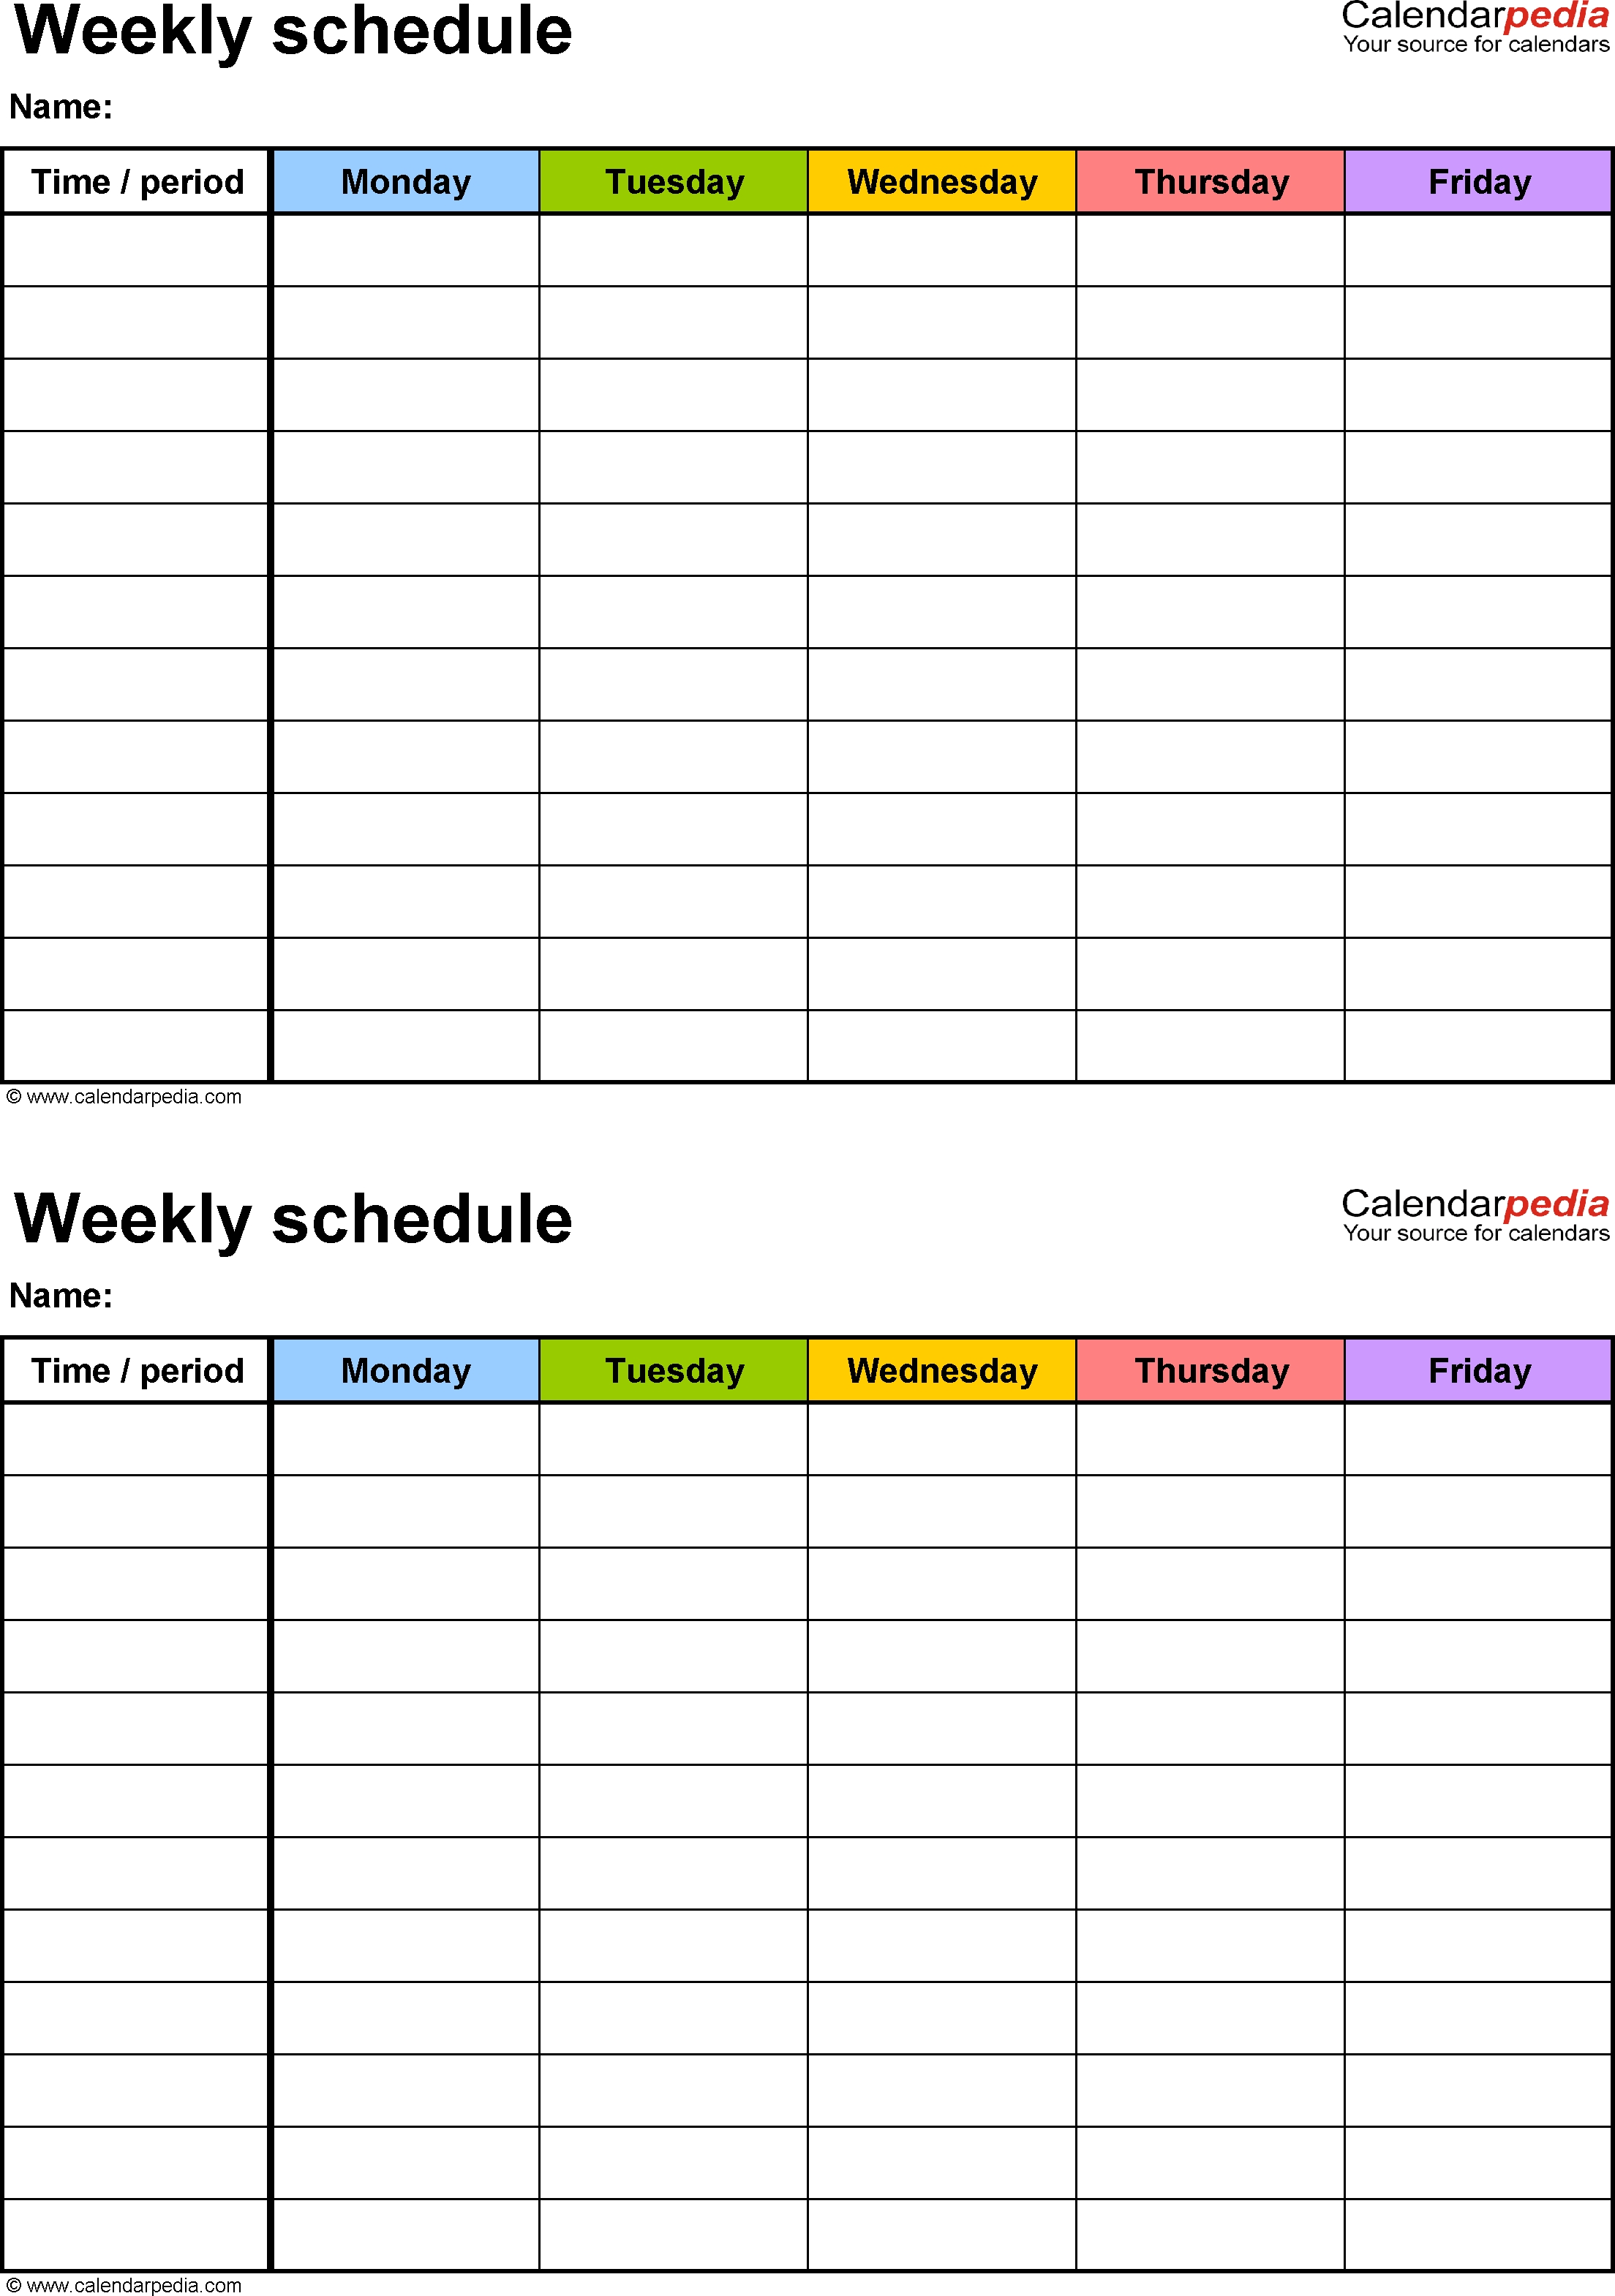 Free Printable Weekly Schedule Templates For Pdf Template | Smorad inside Blank Weekly Schedule Template Printable